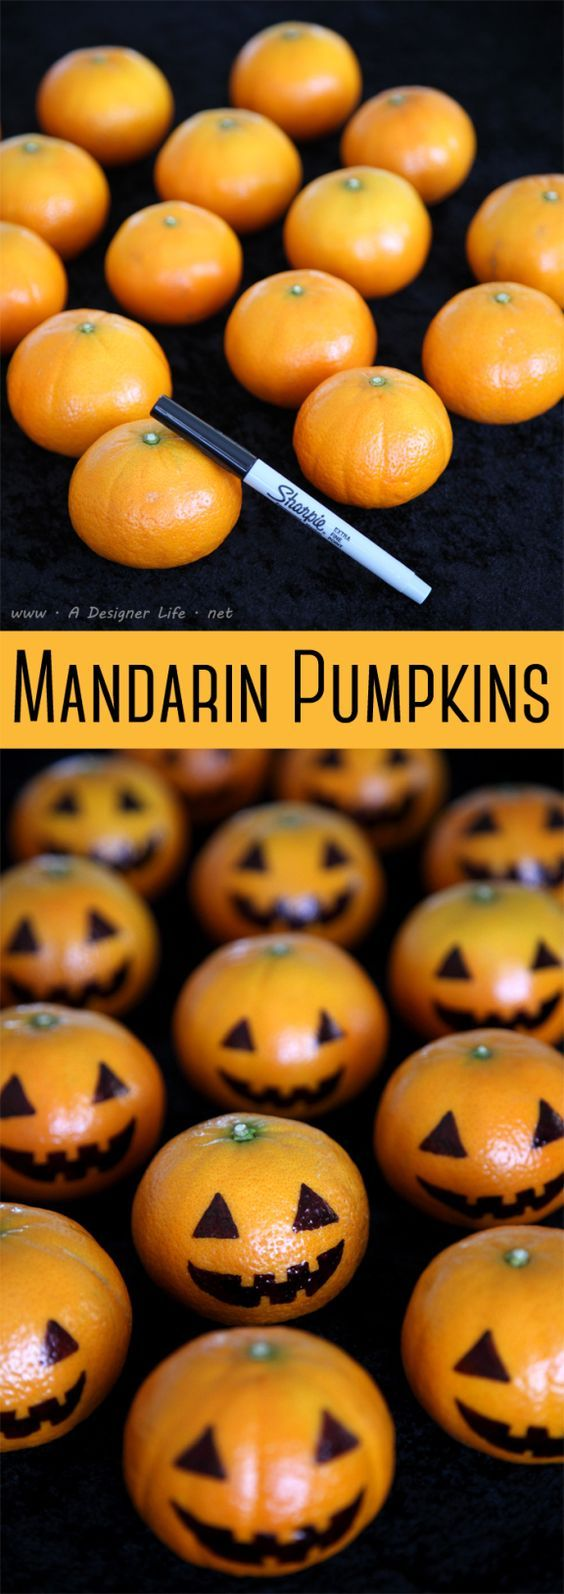 Mandarin Pumpkins. 5 Easy Halloween Food Ideas